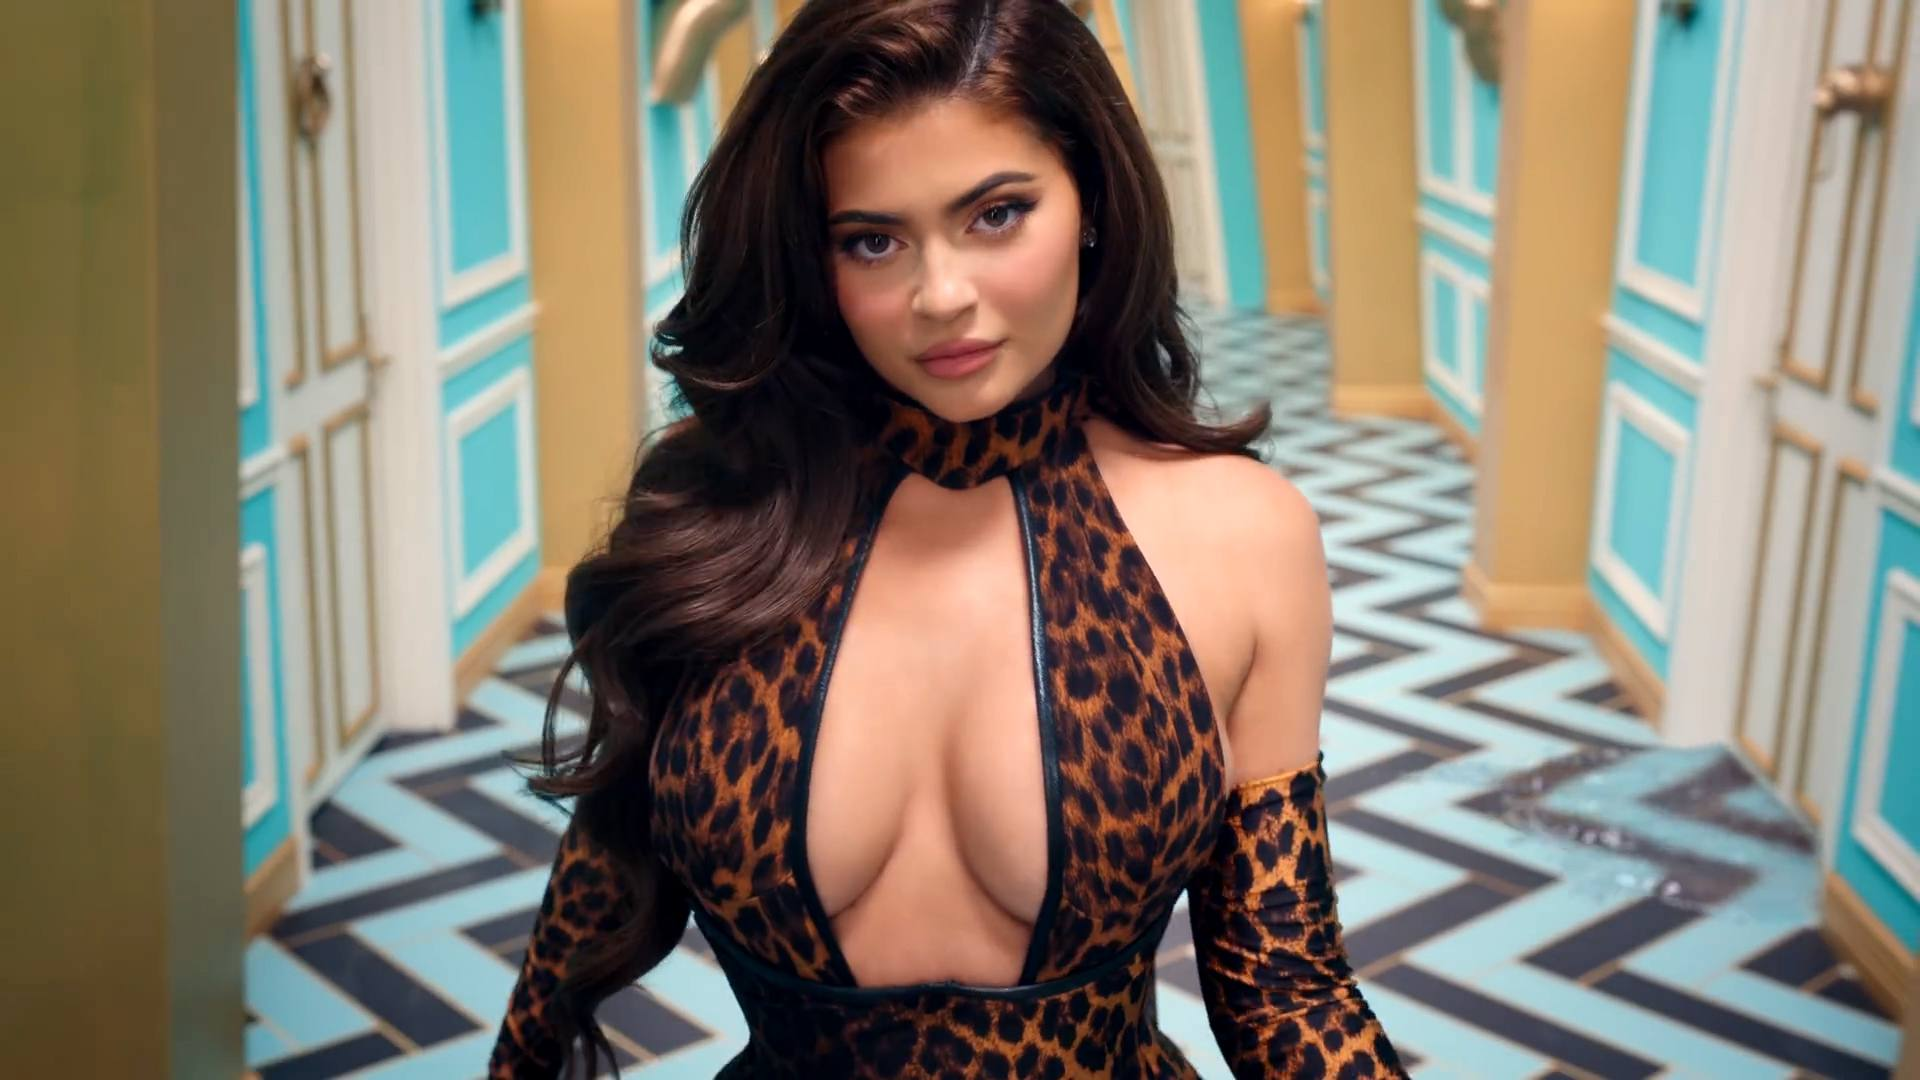 Kyliejenner Beautiful Breasts